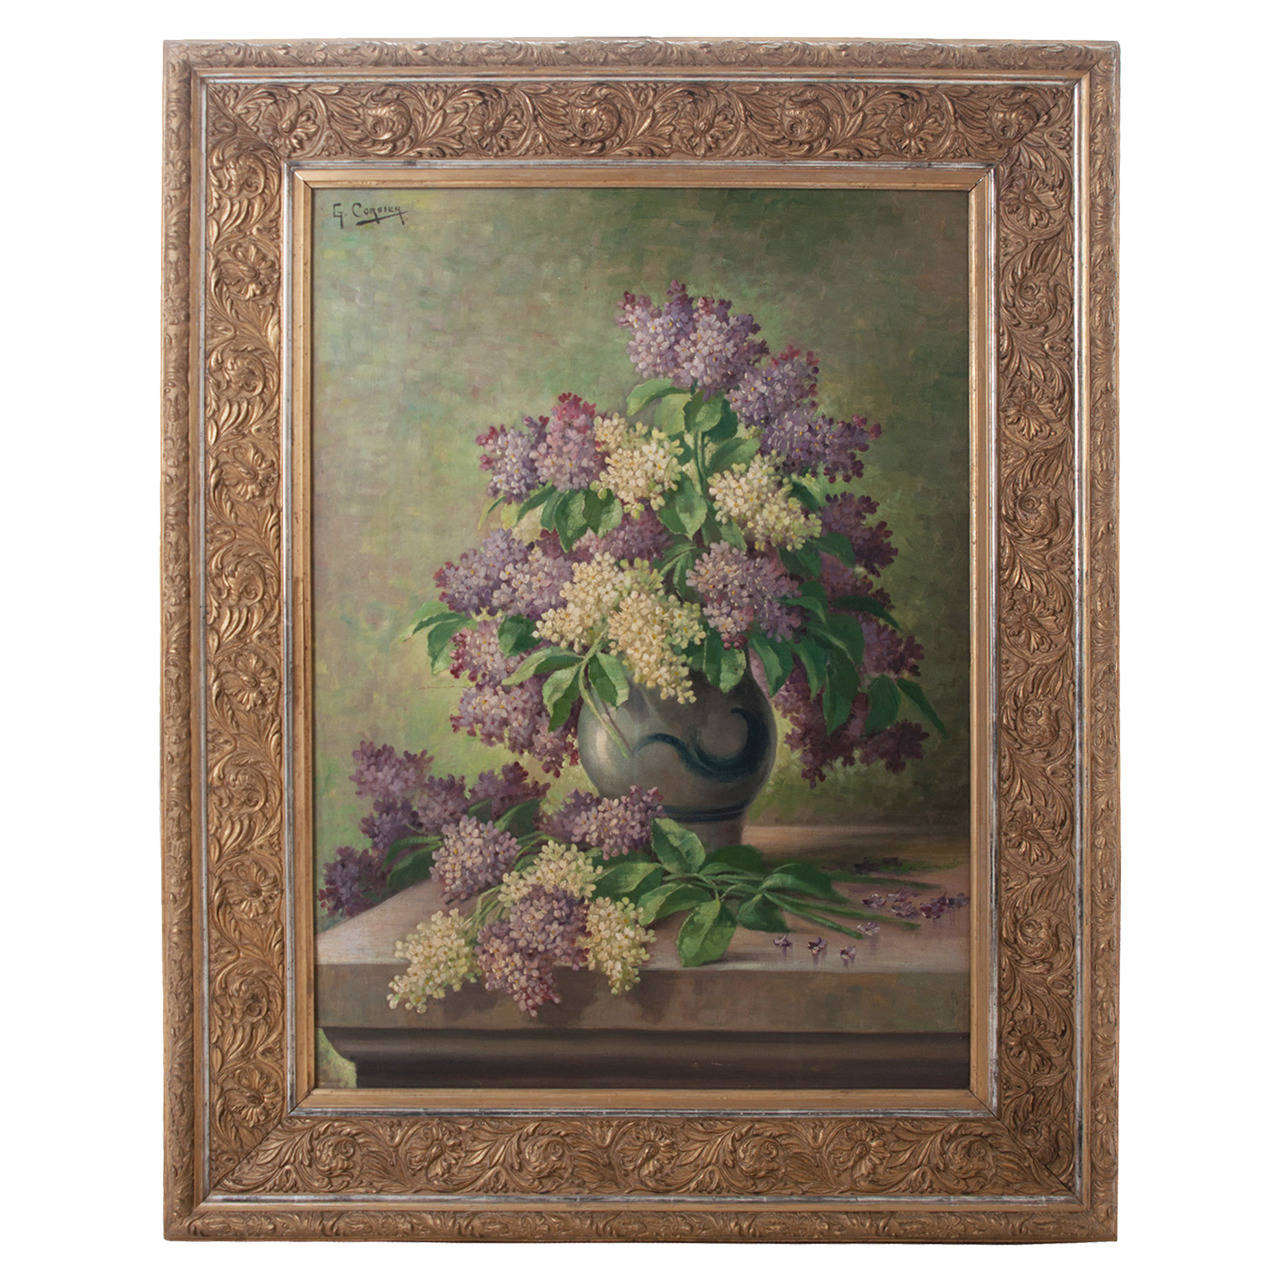 G. Corbier Oil Painting of Lilac Flowers with Carved Gilt Frame